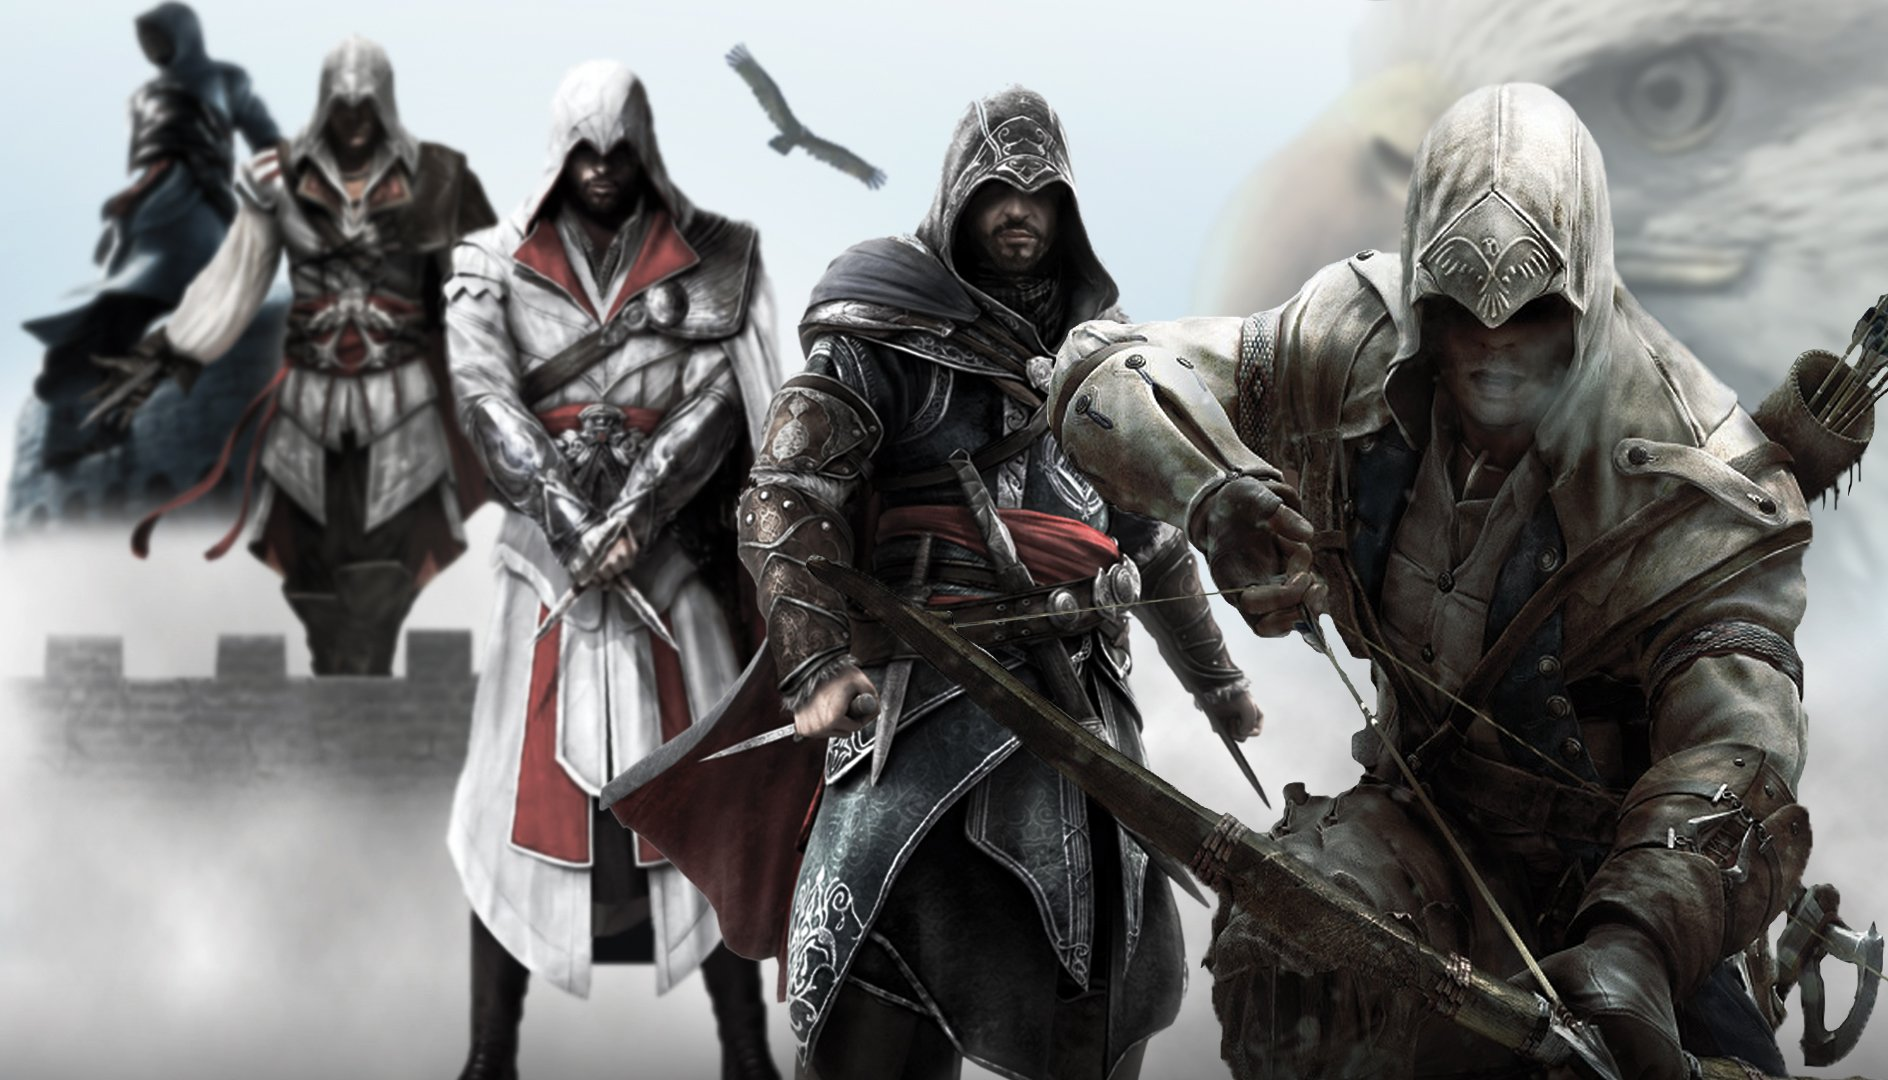 xassassins-creed-lineage.jpg.pagespeed.i